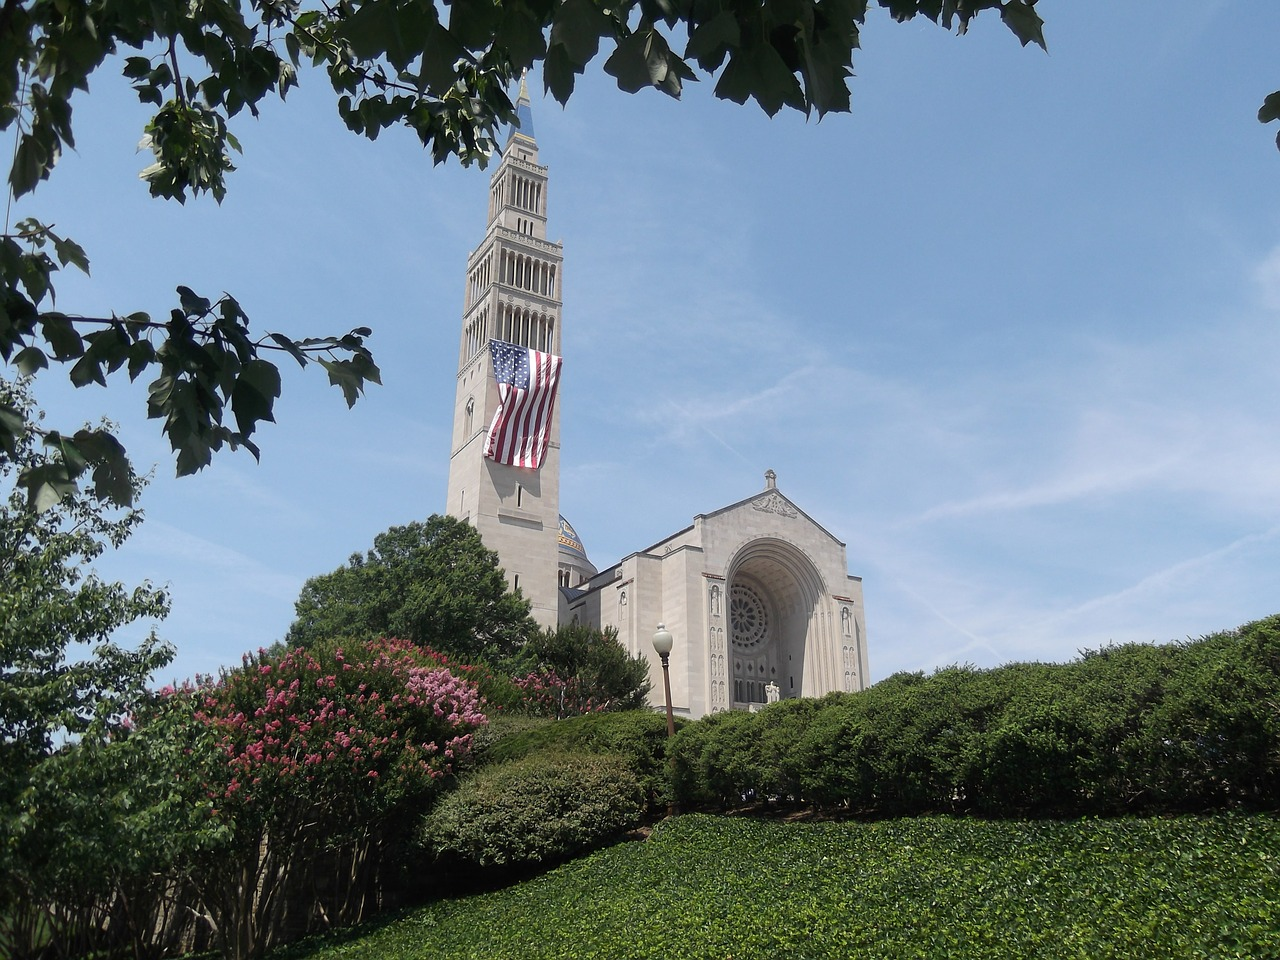 Caption: Basilica of the National Shrine of the Immaculate Conception